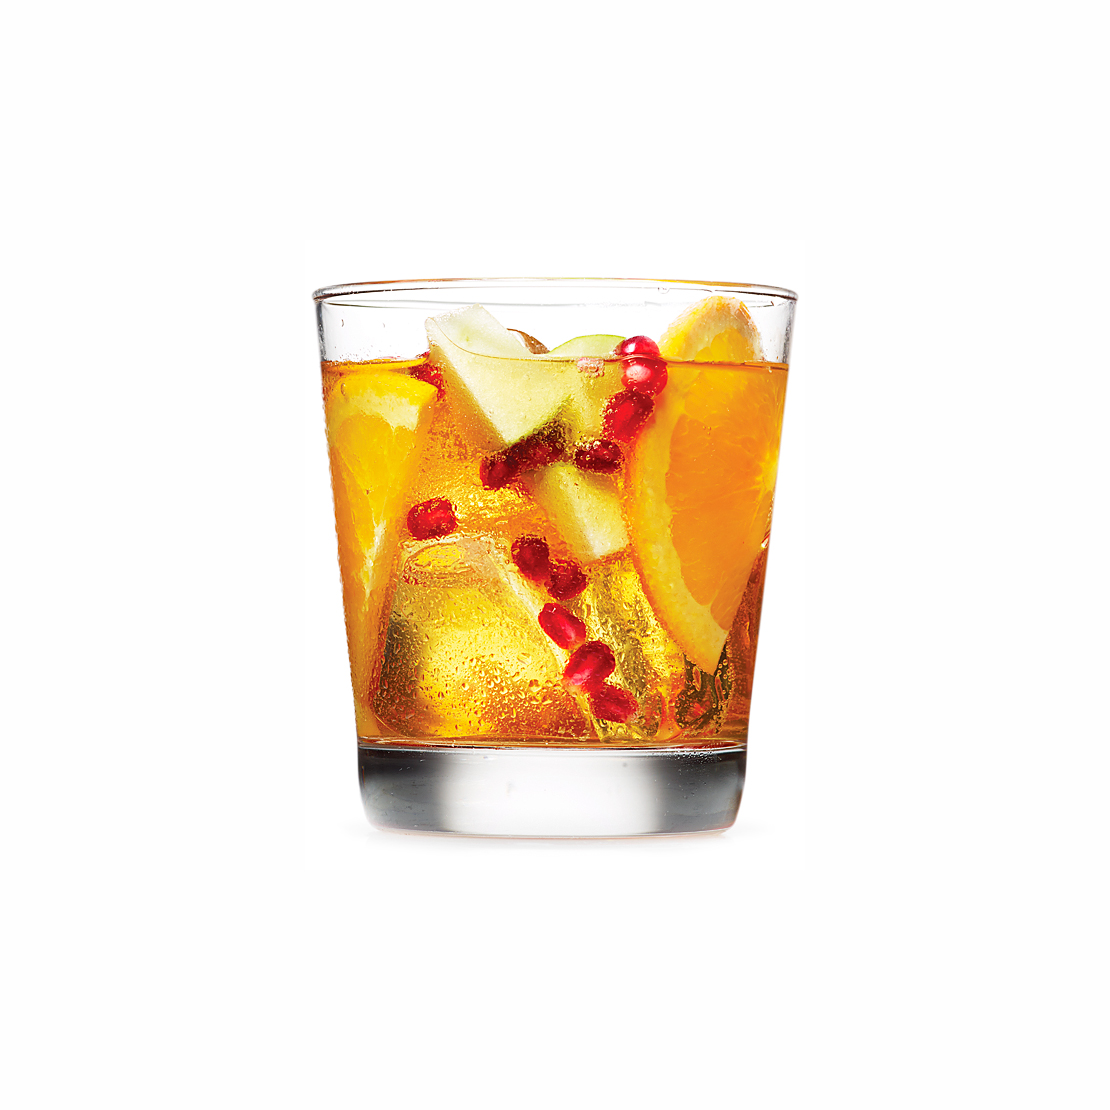 Spiced Rum and Cider Sangria With Pomegranate Seeds